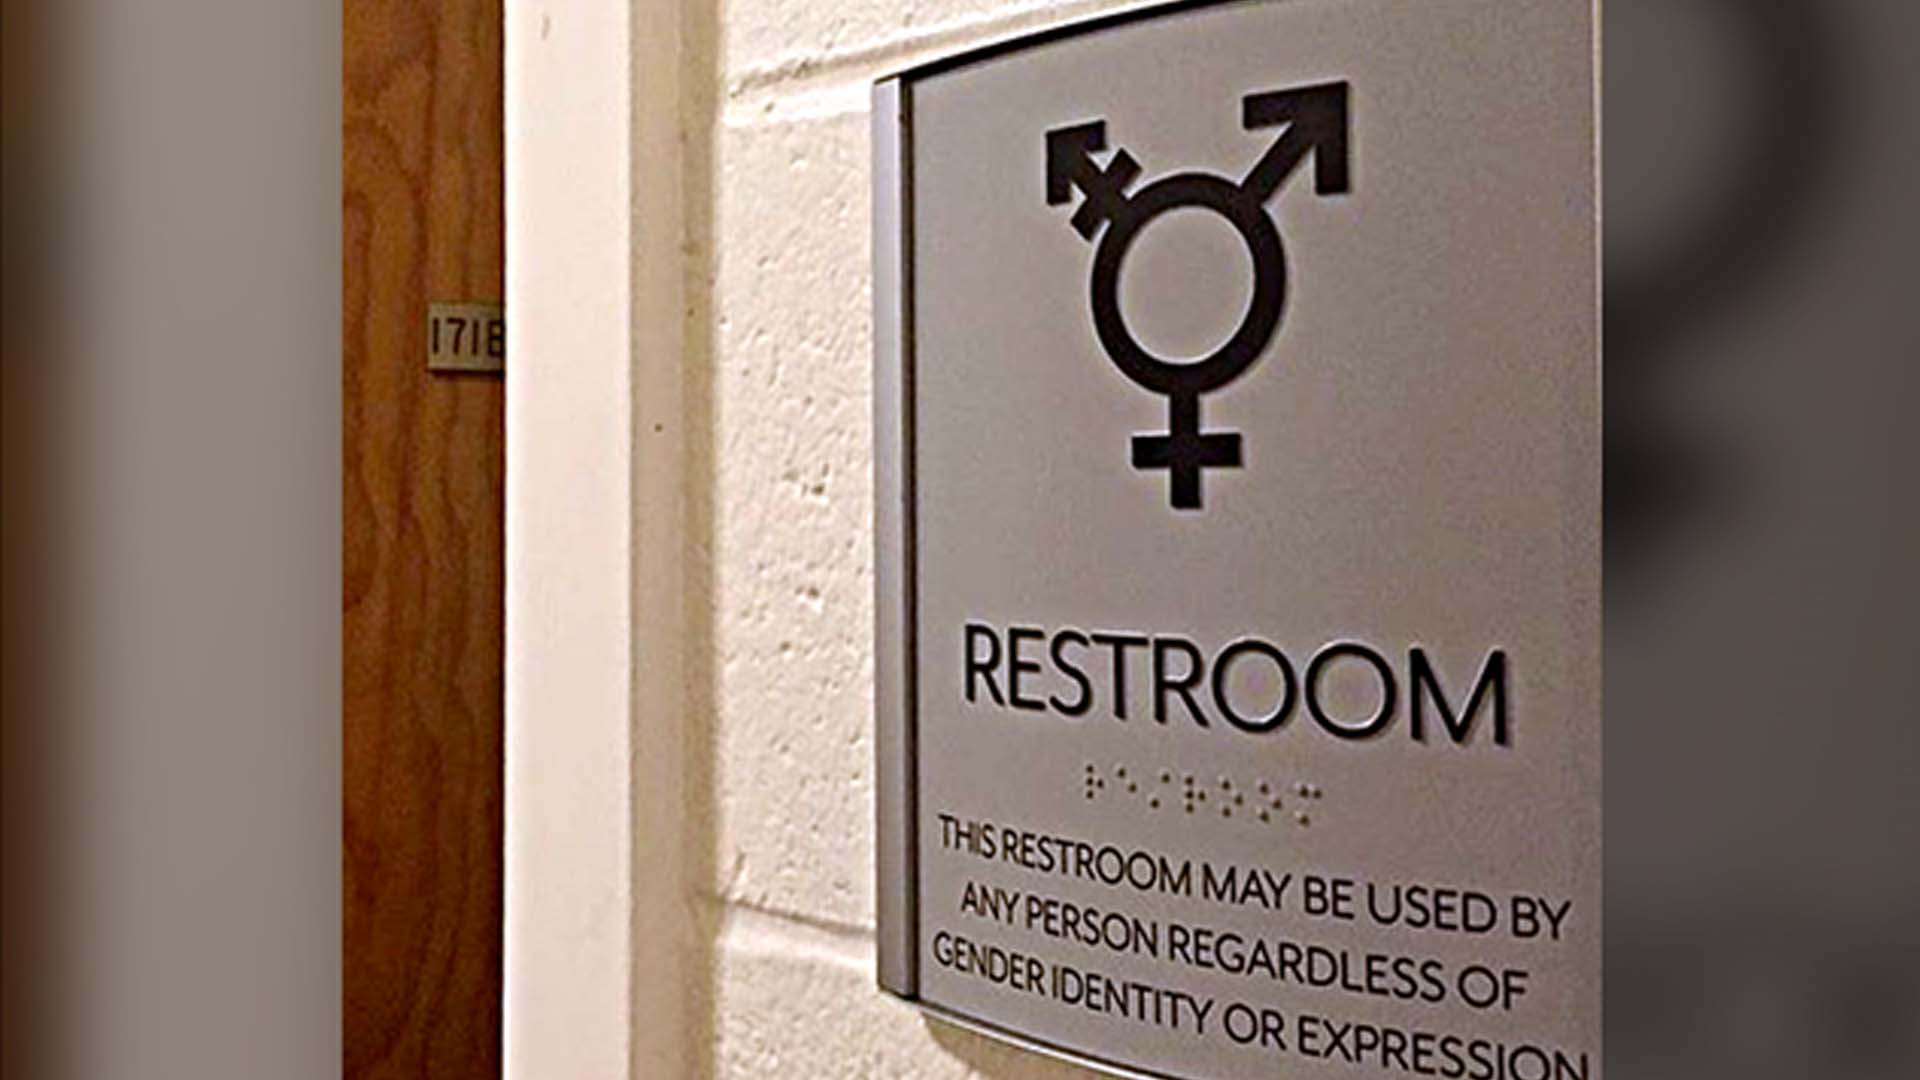 Spicer expect new transgender student policy wednesday kobi tv nbc5 koti tv nbc2 for Should bathrooms be gender neutral